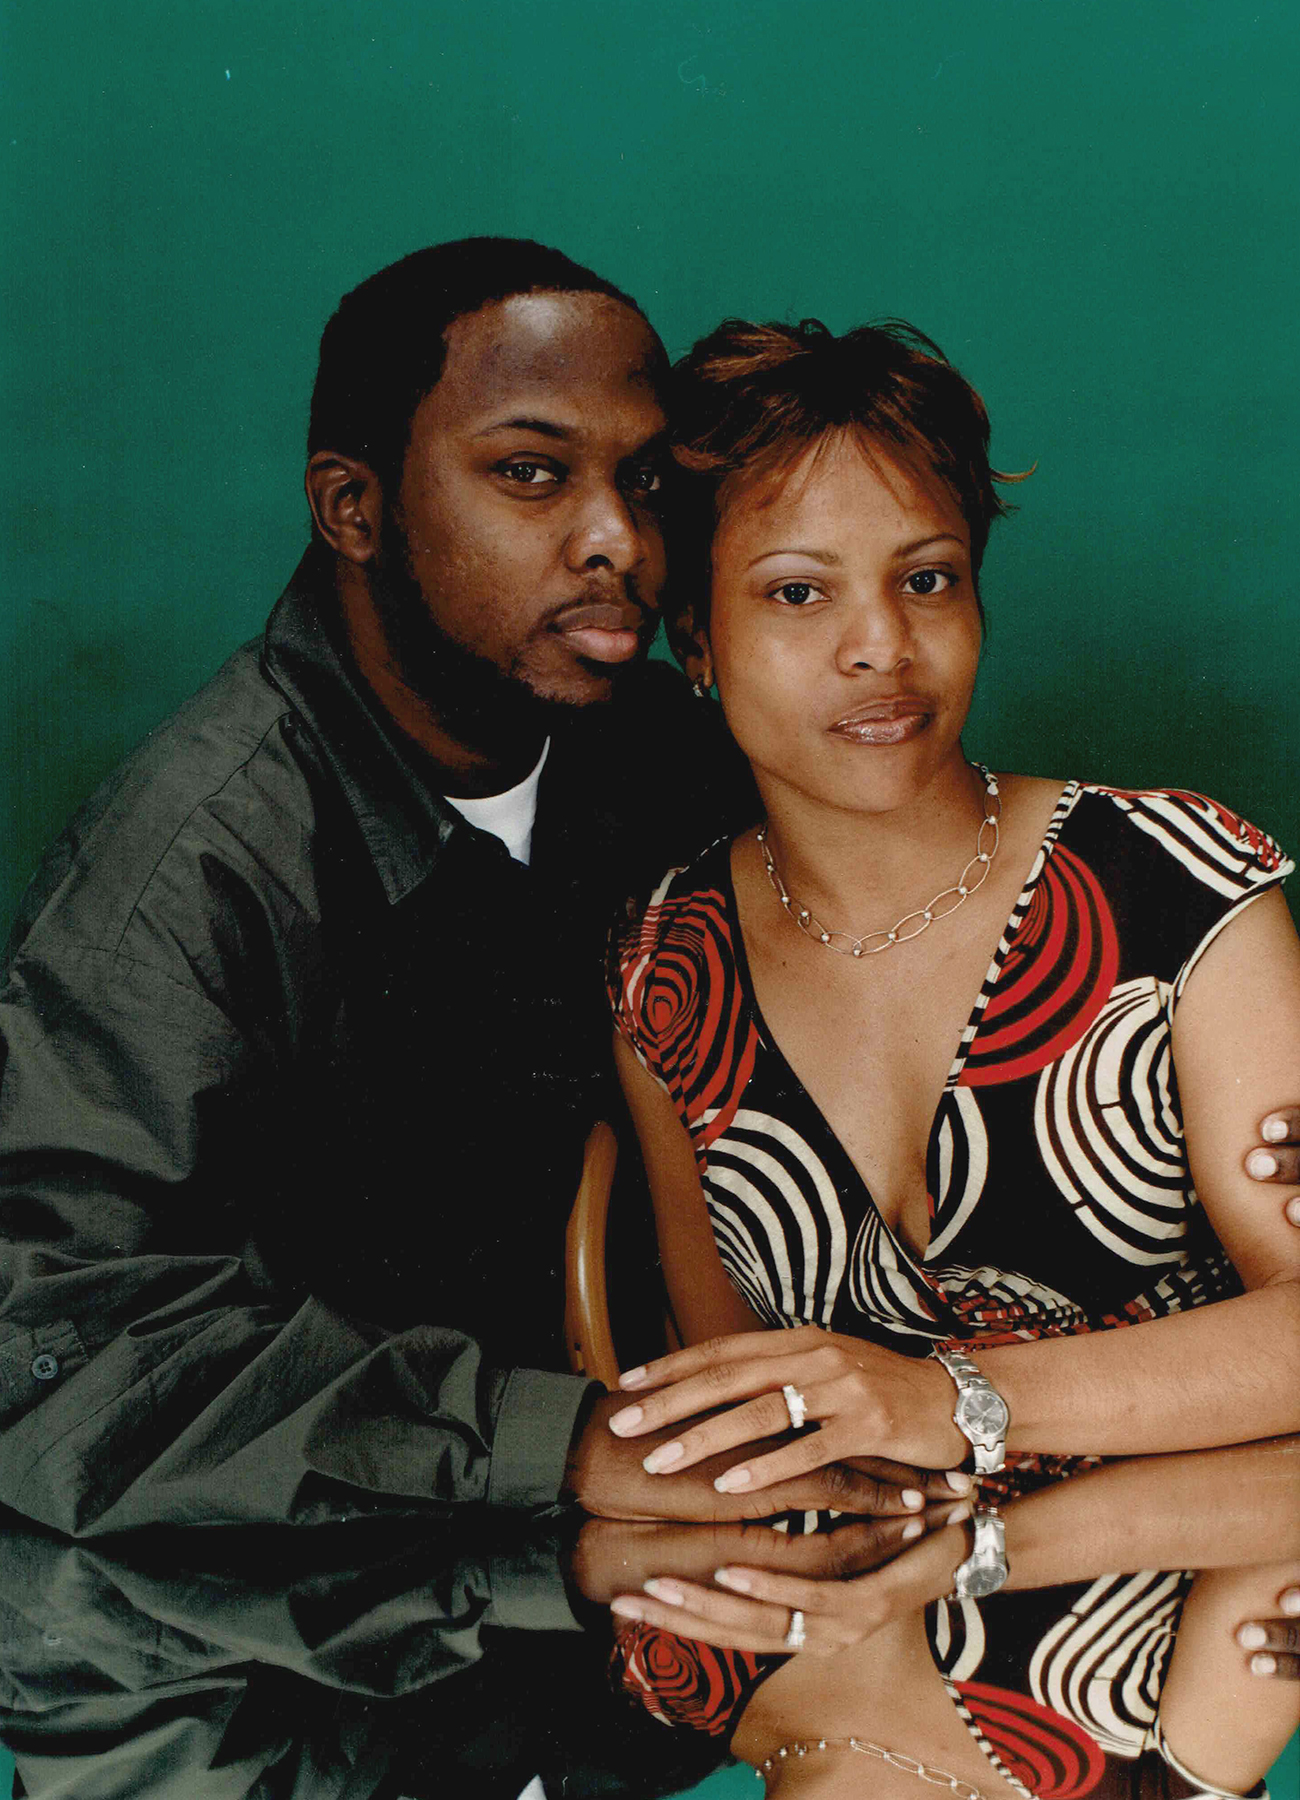 Malik Taylor Phife Dawg with wife Deisha Head-Taylor around the time of their engagement in 2001.